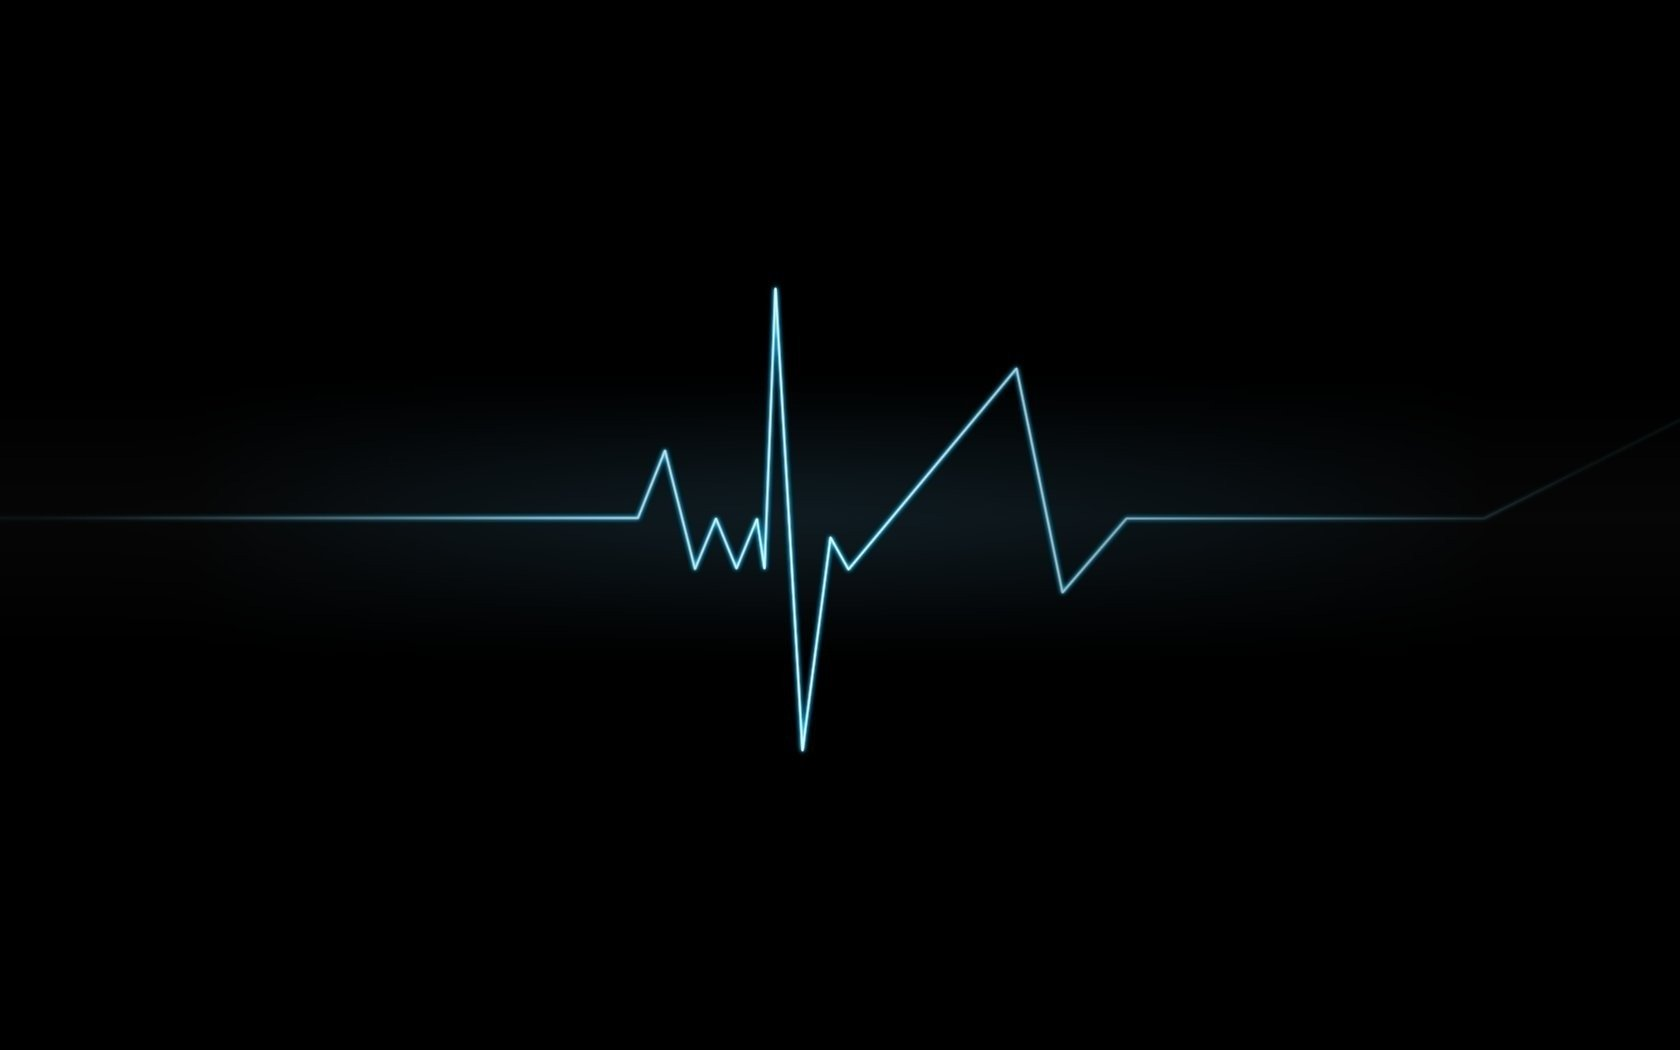 Hd Wallpapers Pulse: Pulse Wallpaper And Background Image